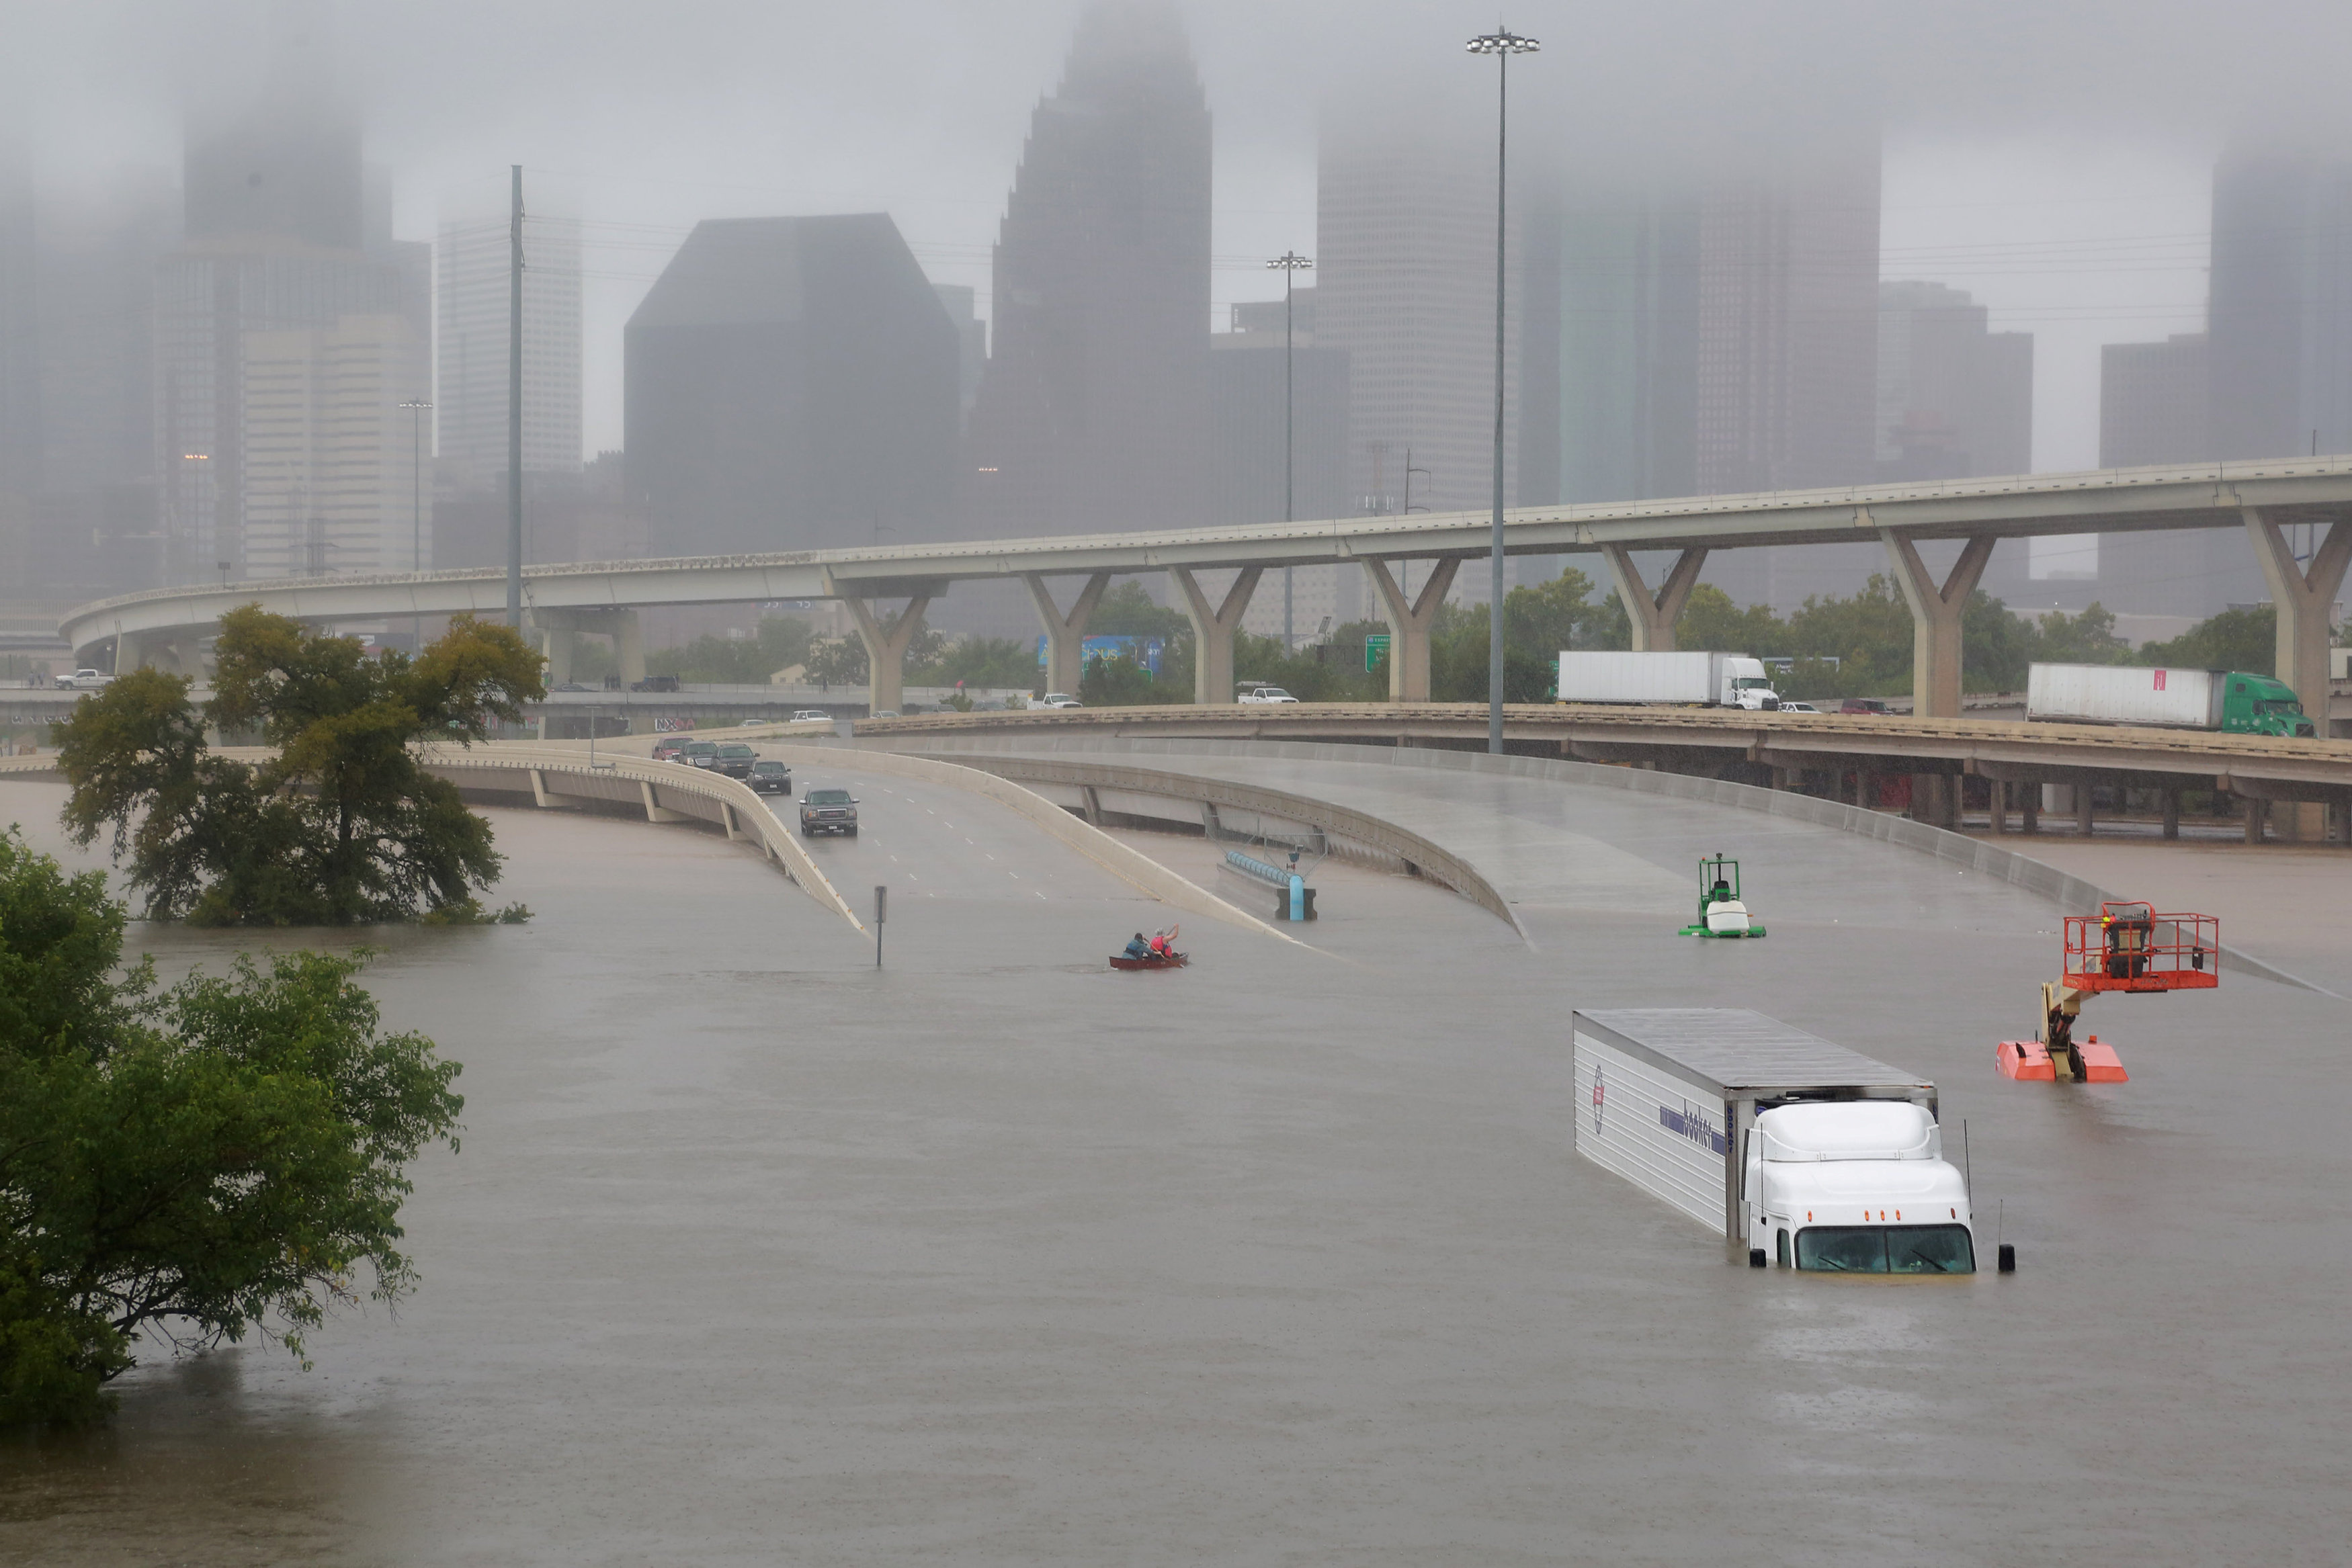 Interstate highway 45 is submerged from the effects of Hurricane Harvey seen during widespread flooding in Houston, Texas on Aug. 27, 2017. (REUTERS/Richard Carson)